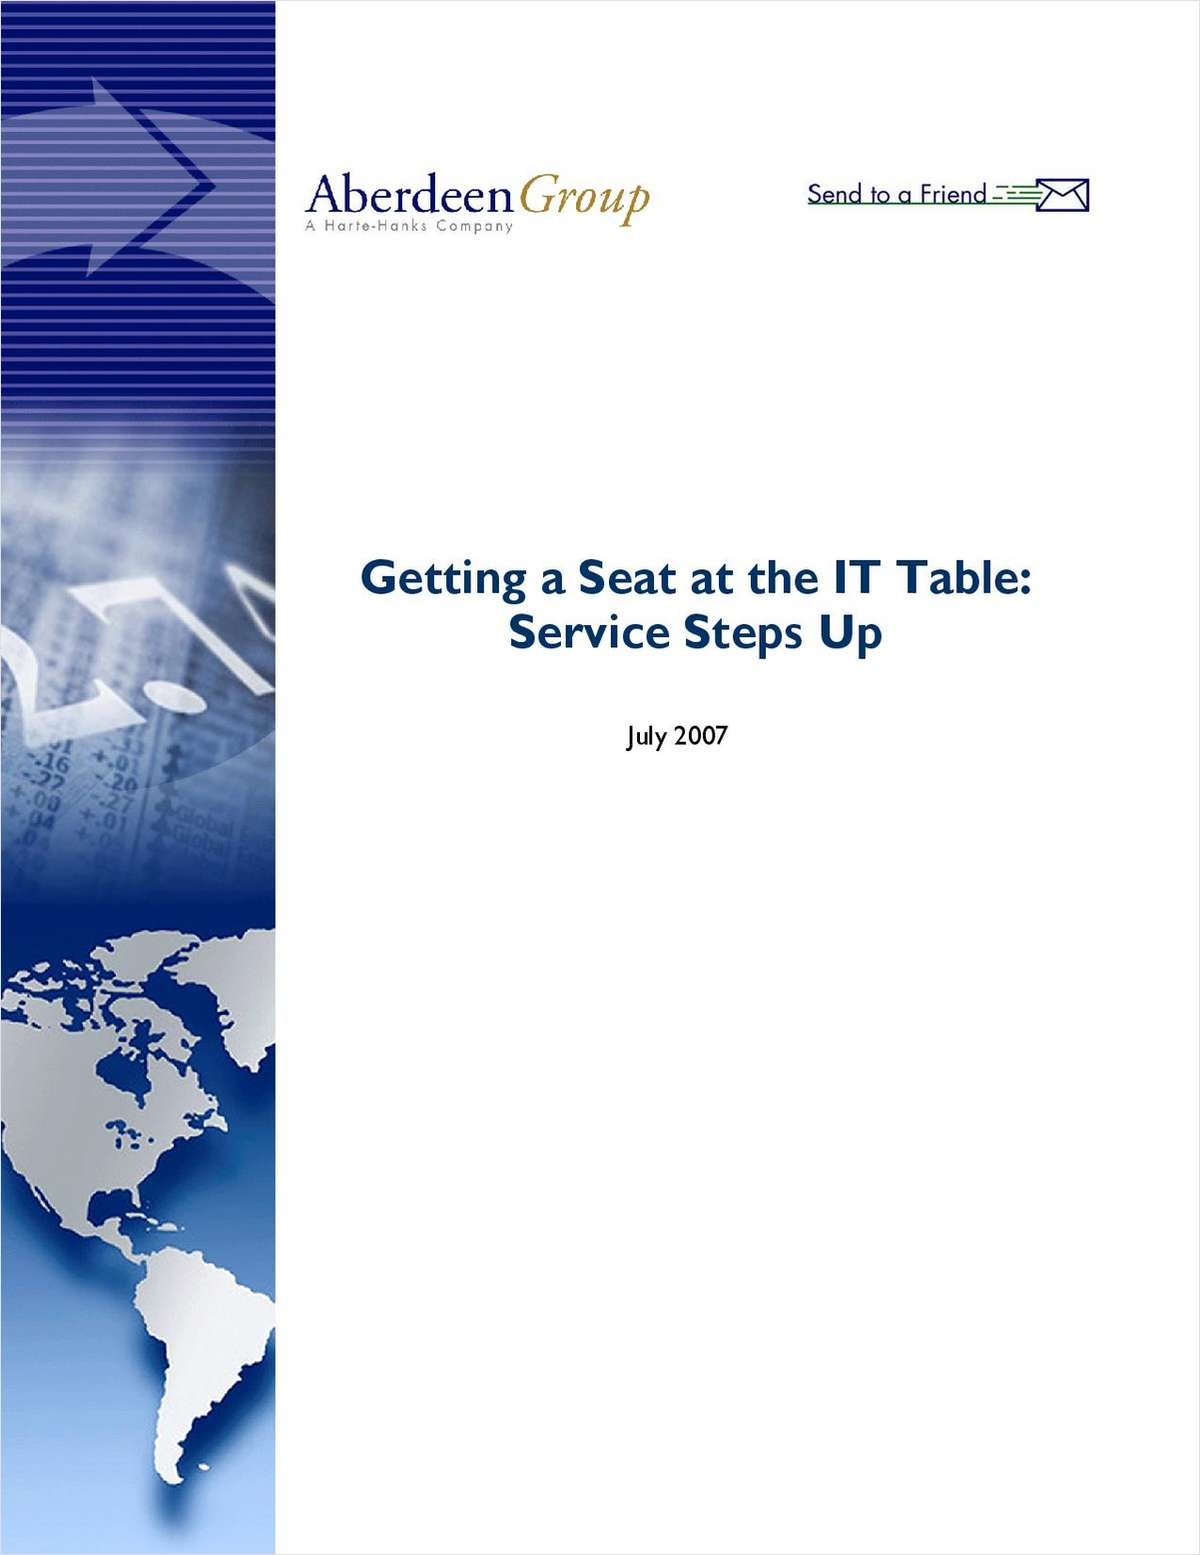 Getting a Seat at the IT Table: Service Steps Up